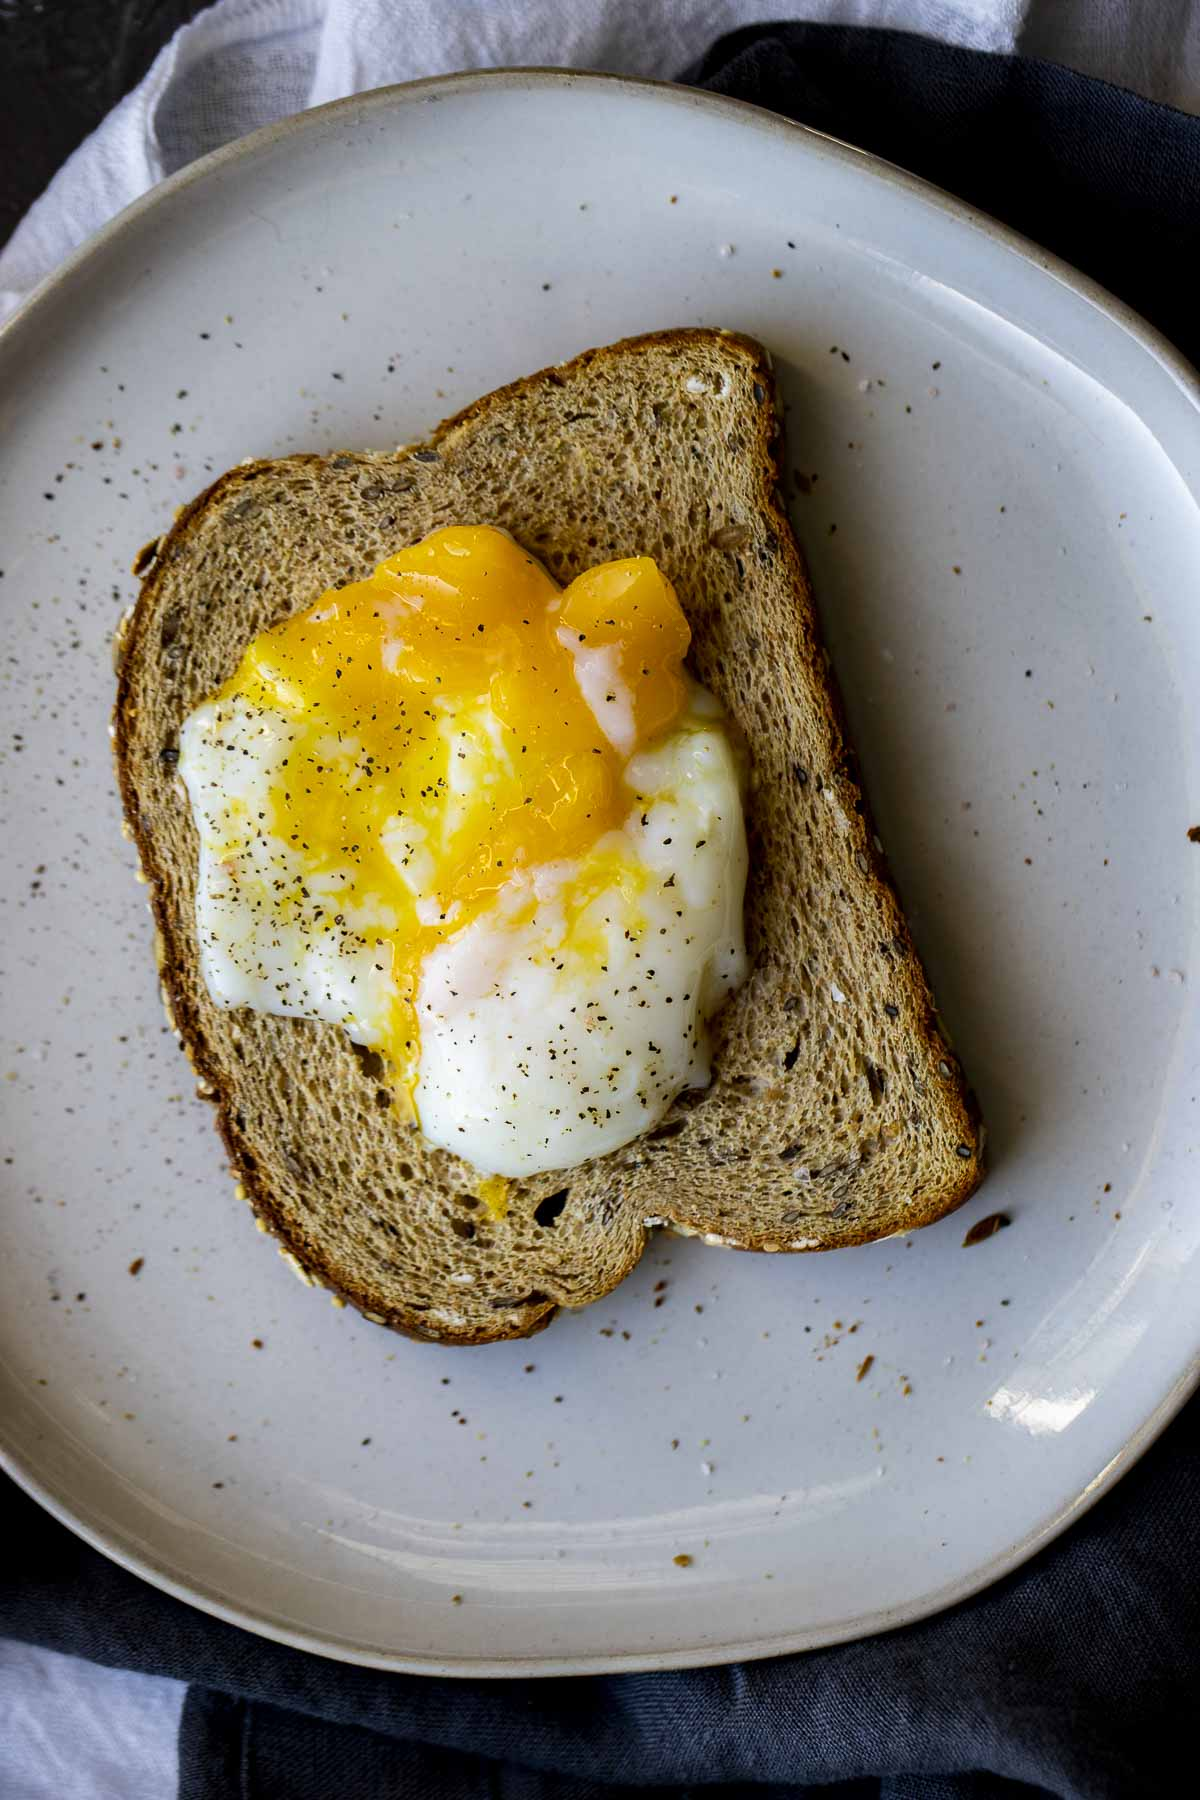 Poached egg over toasted bread.